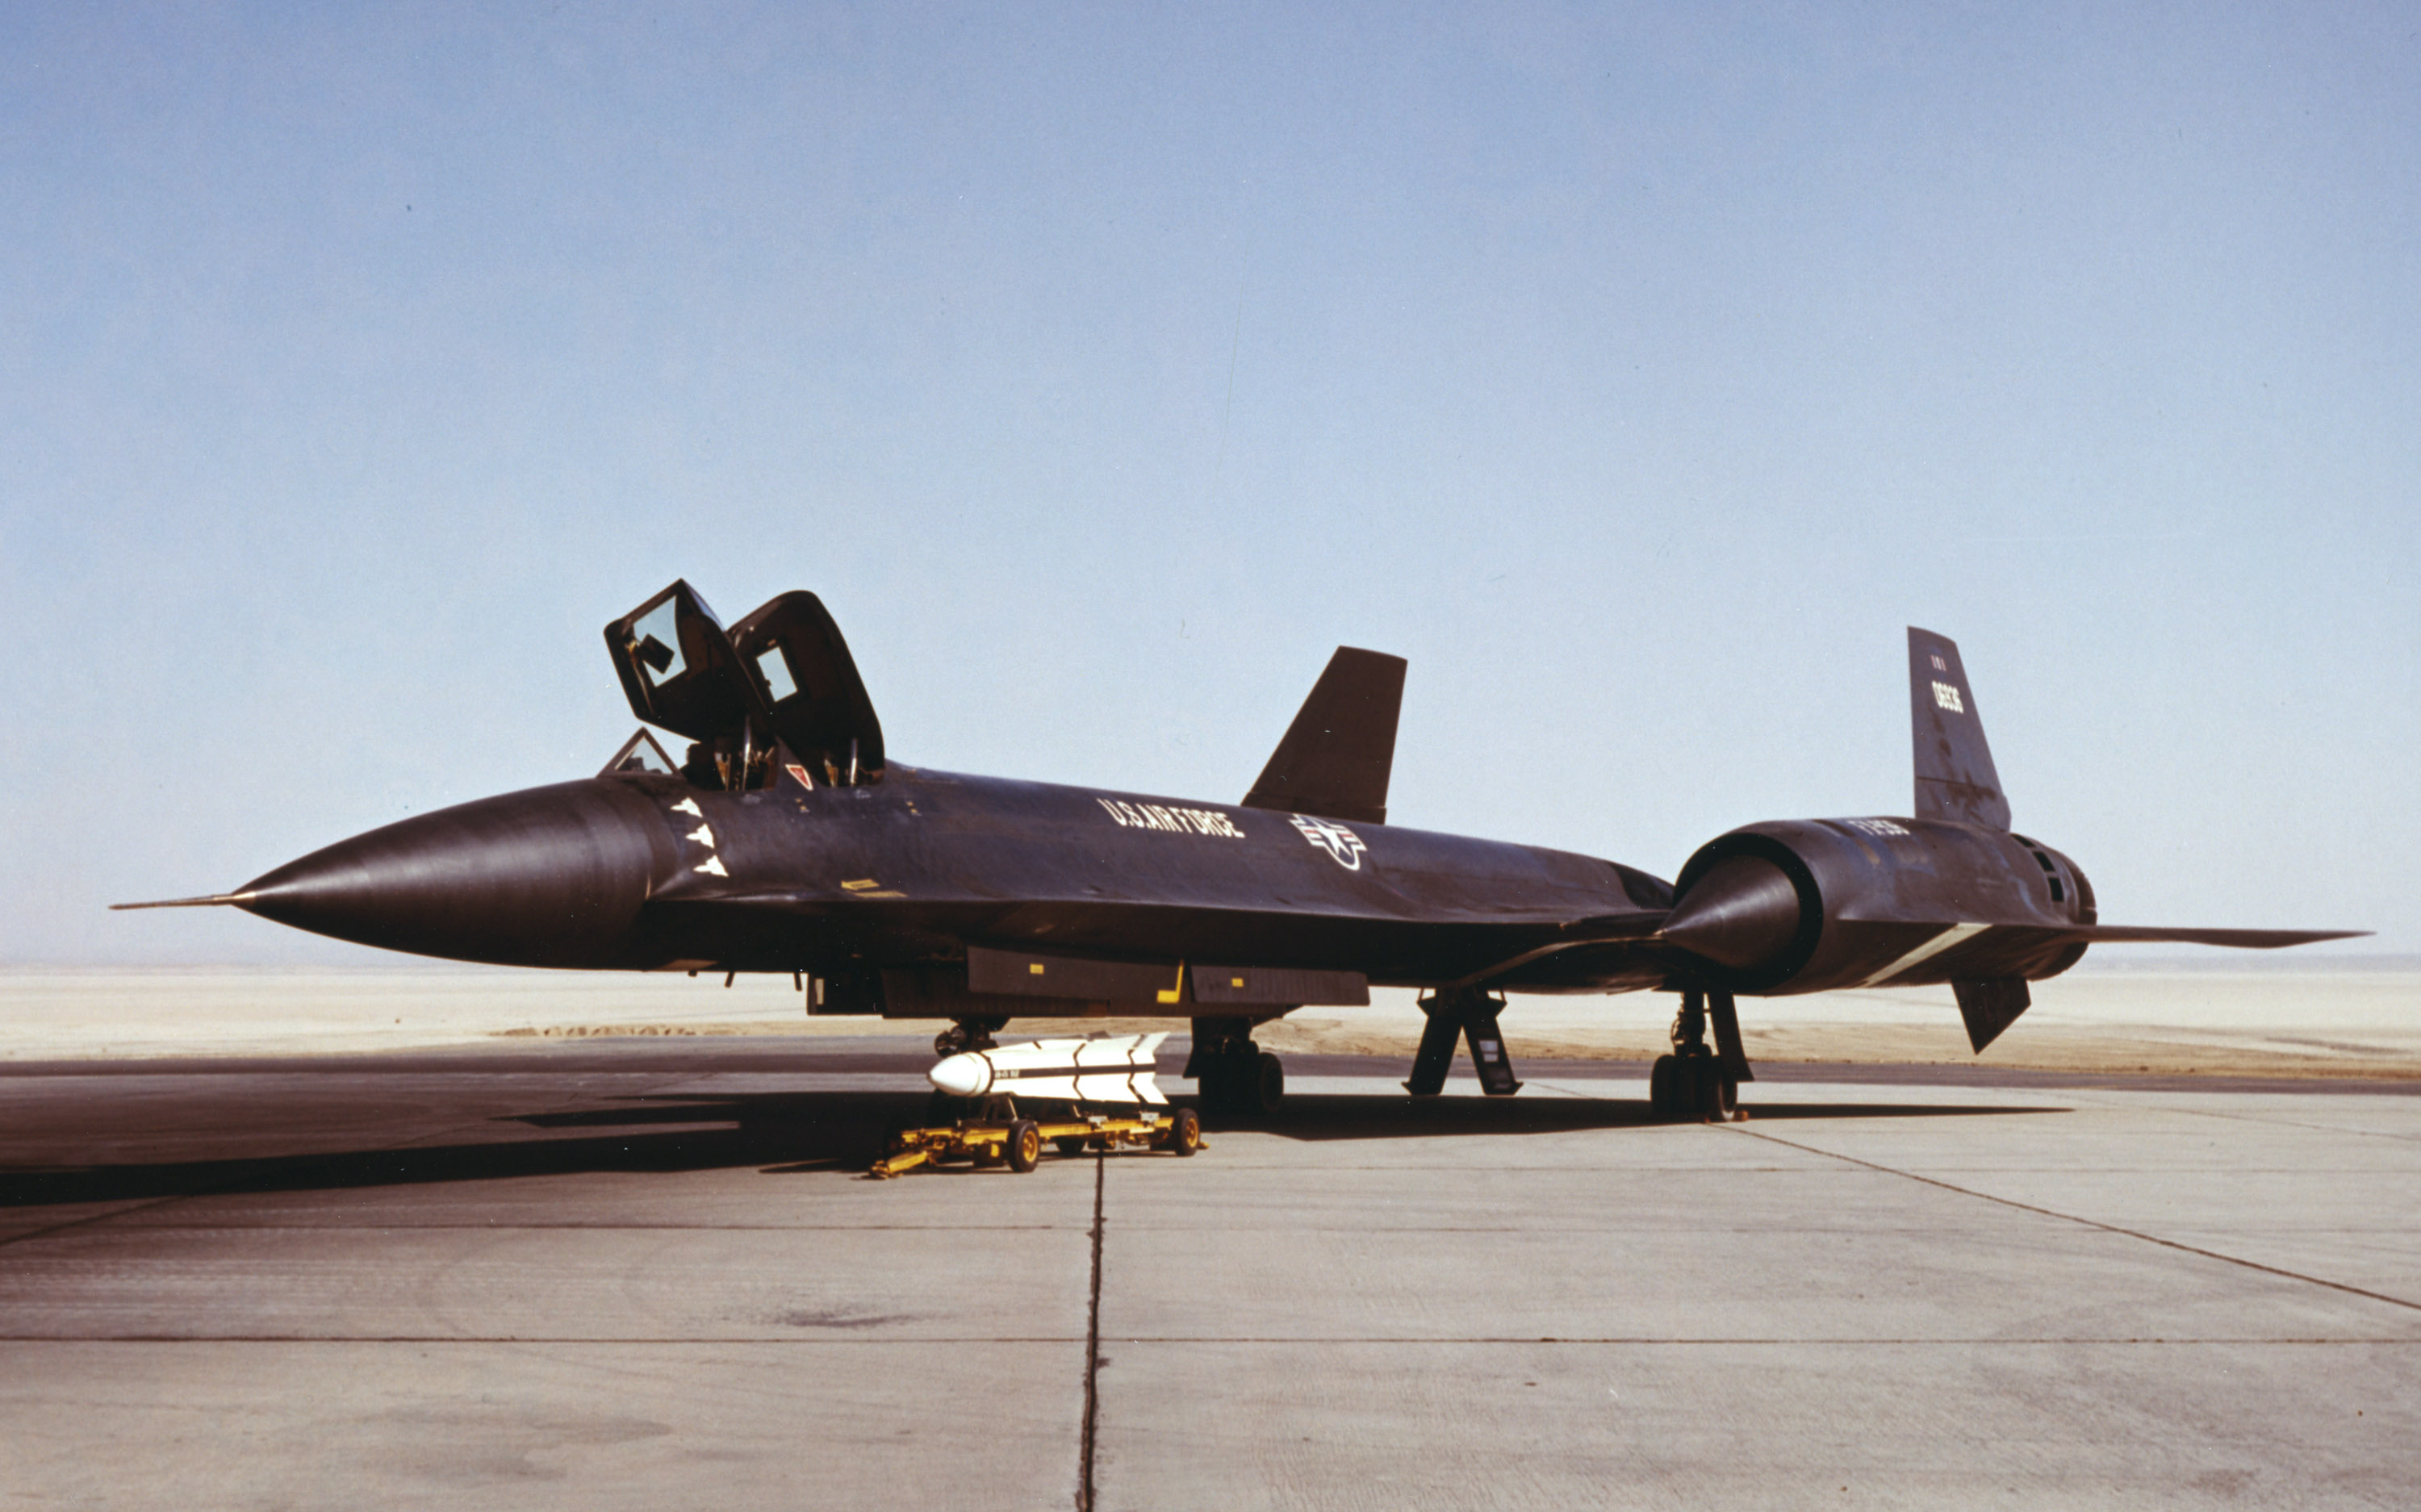 A Hughes AIM-47 missile sits next to the third Lockheed YF-12A Blackbird at Edwards AFB. The white silhouettes on the forward fuselage denote the speed and altitude records set in May 1965. (AFTC/HO photo)